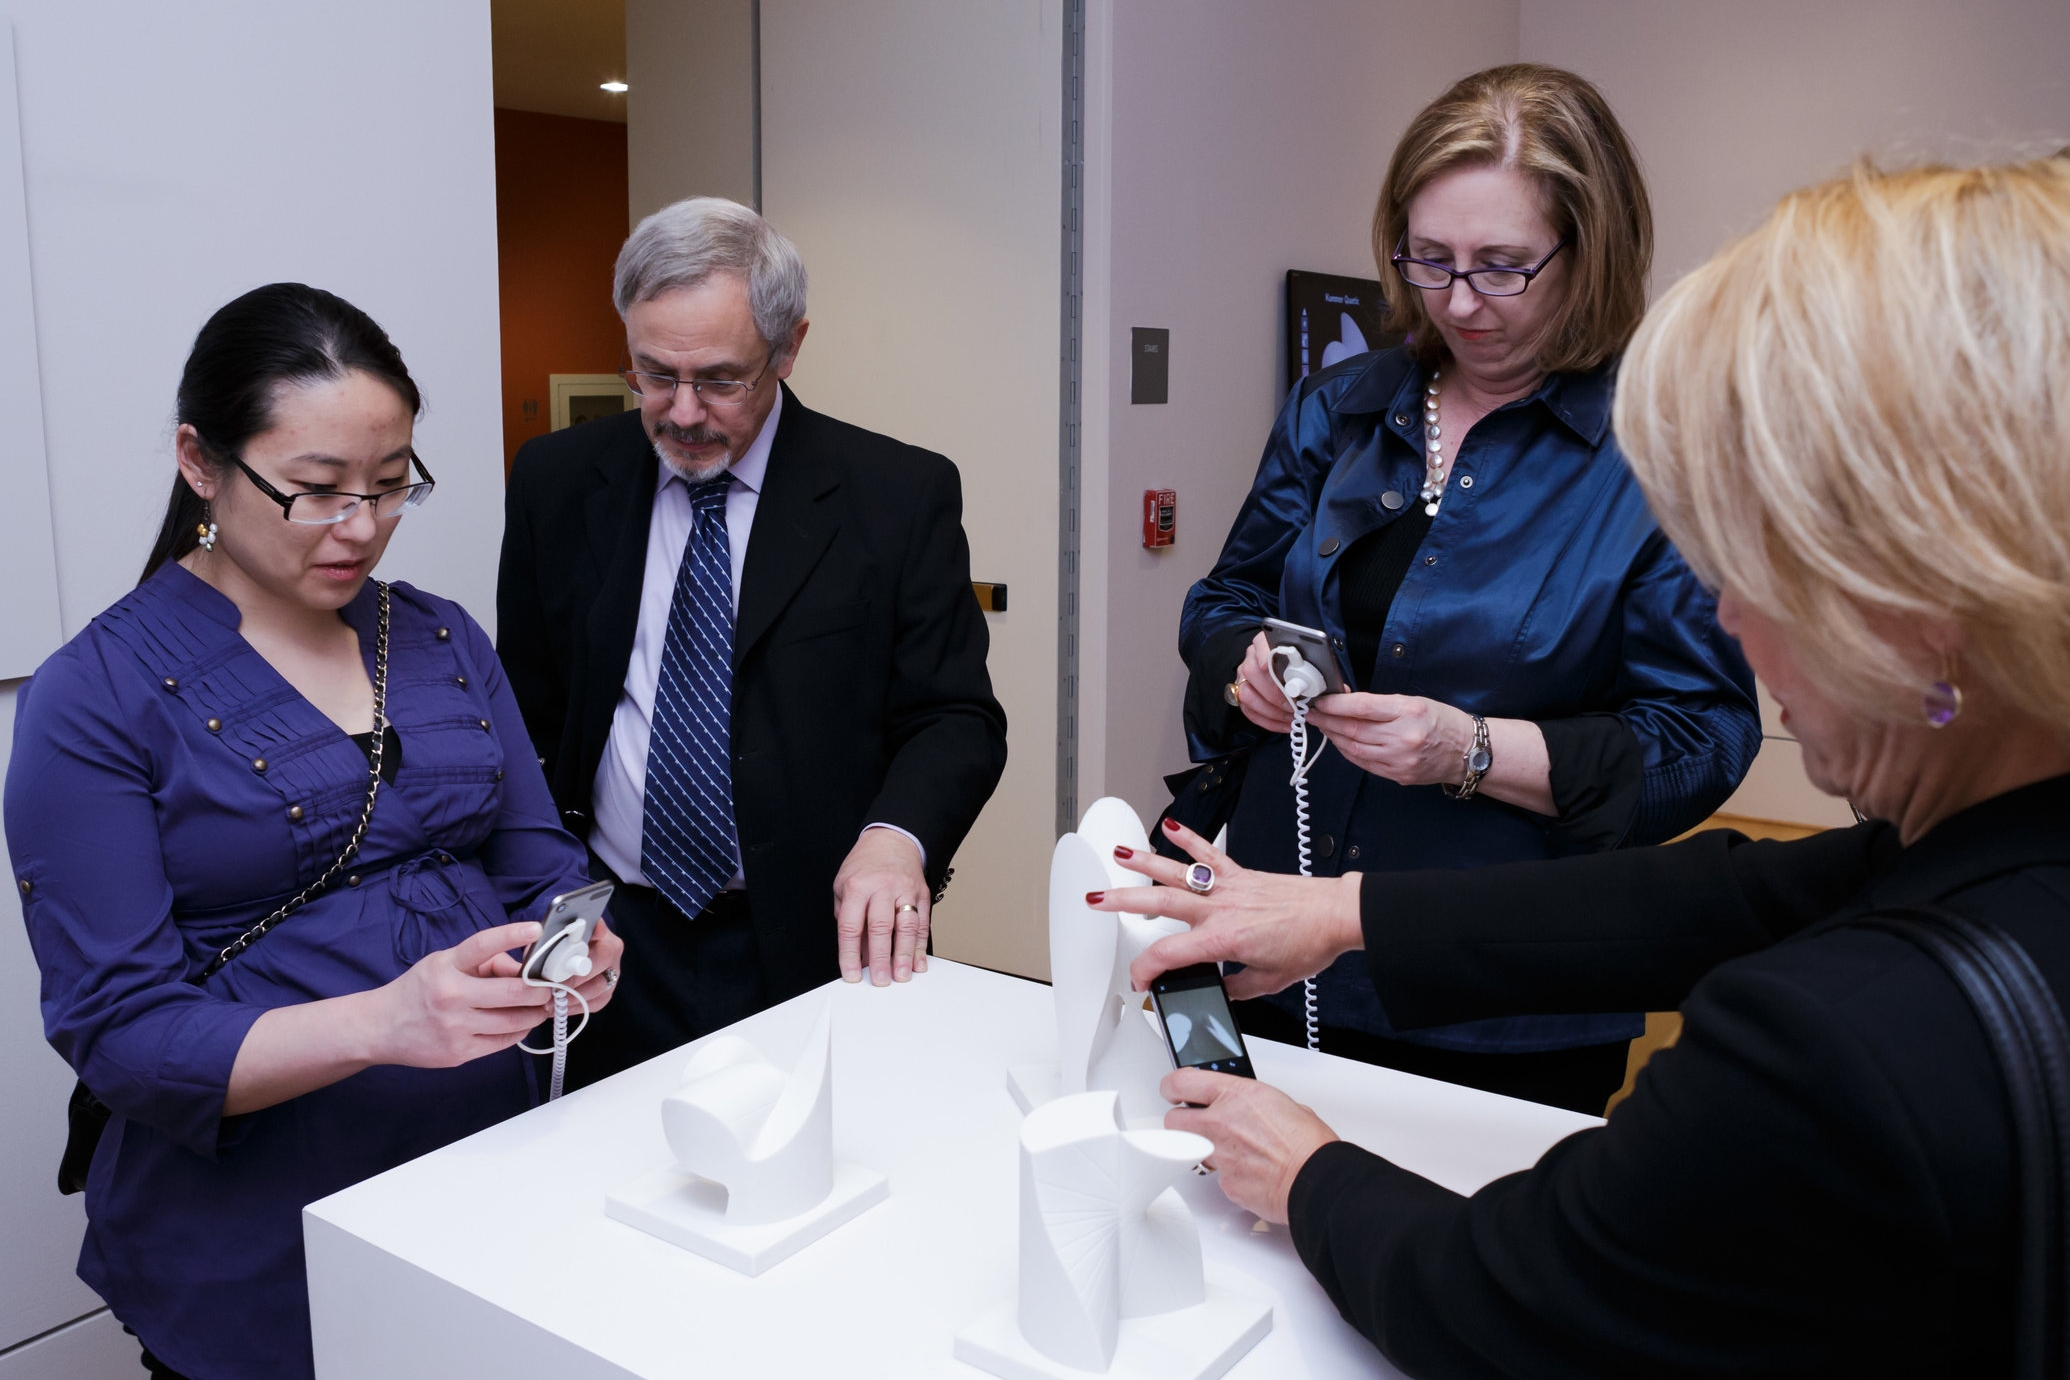 Visitors capture Instagrams of mathematical models at the Phillips Collection, 2015.